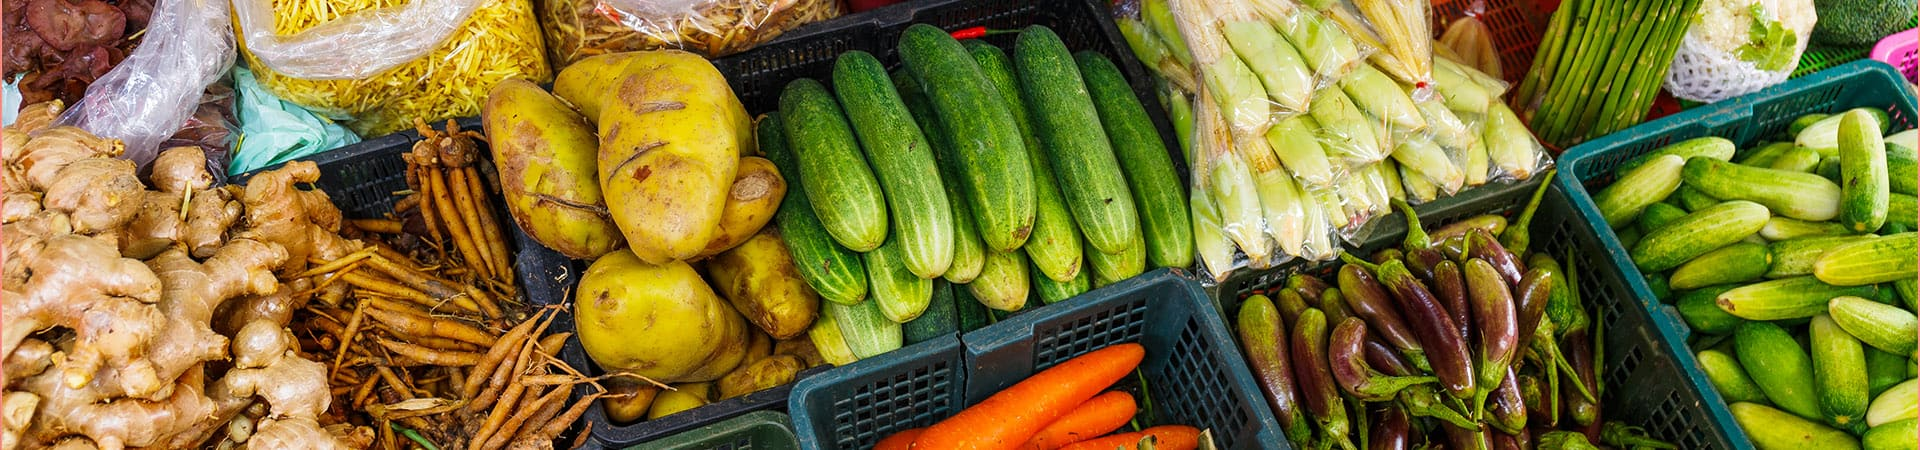 Fruits and Vegetables packaging and distribution